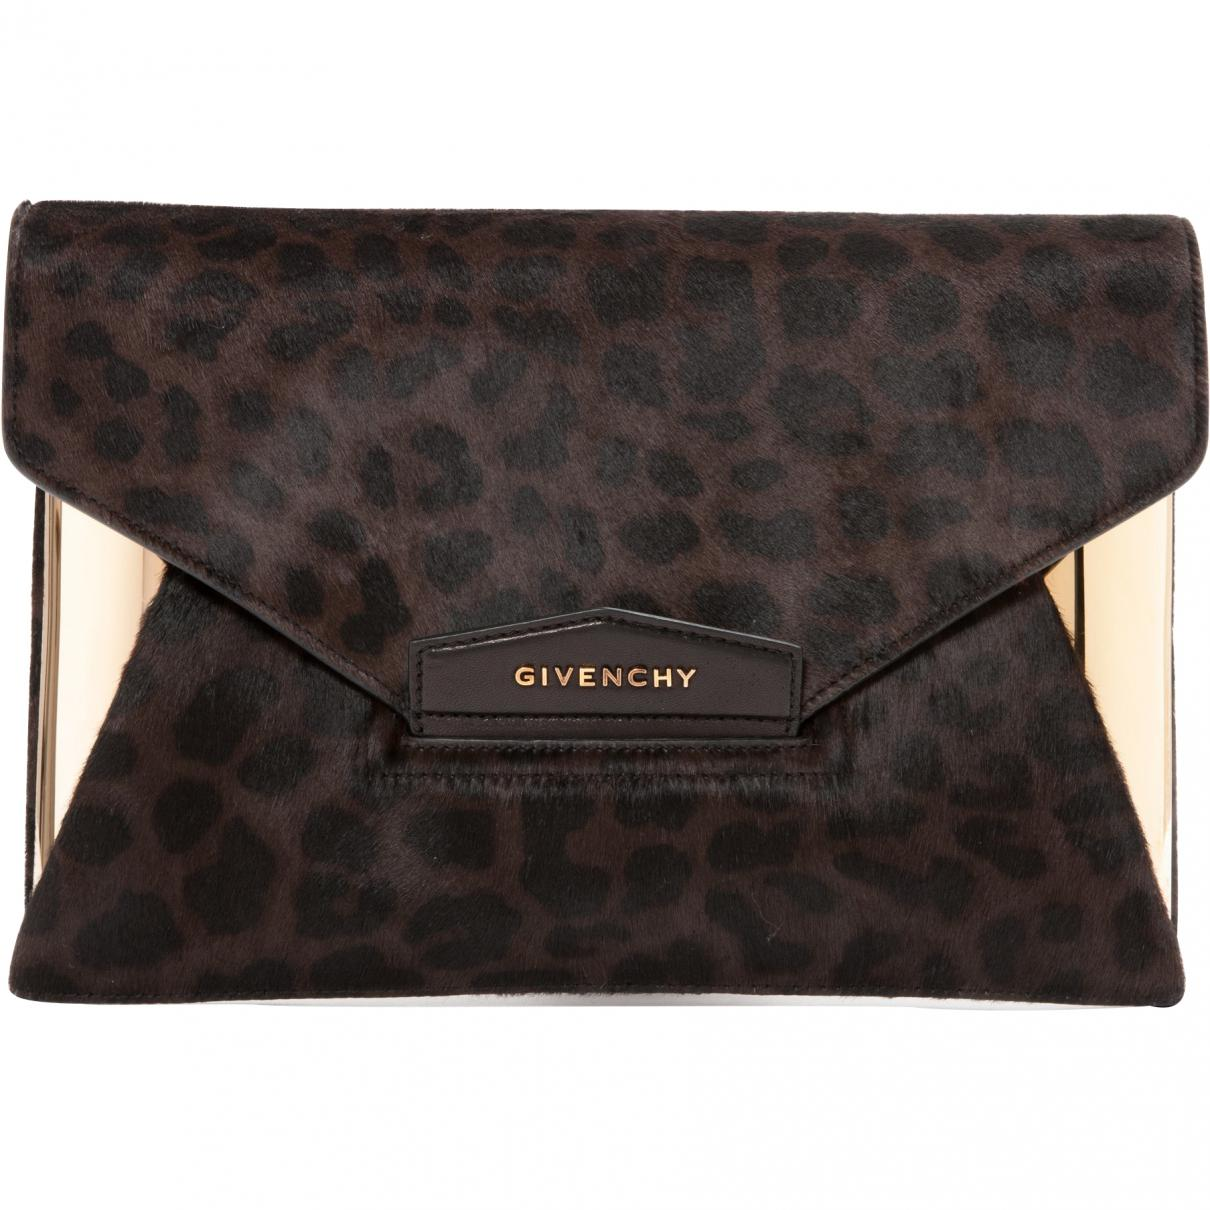 Givenchy Pre-owned Brown Pony-style Calfskin Clutch Bags in Brown - Lyst 4e1b960258d58